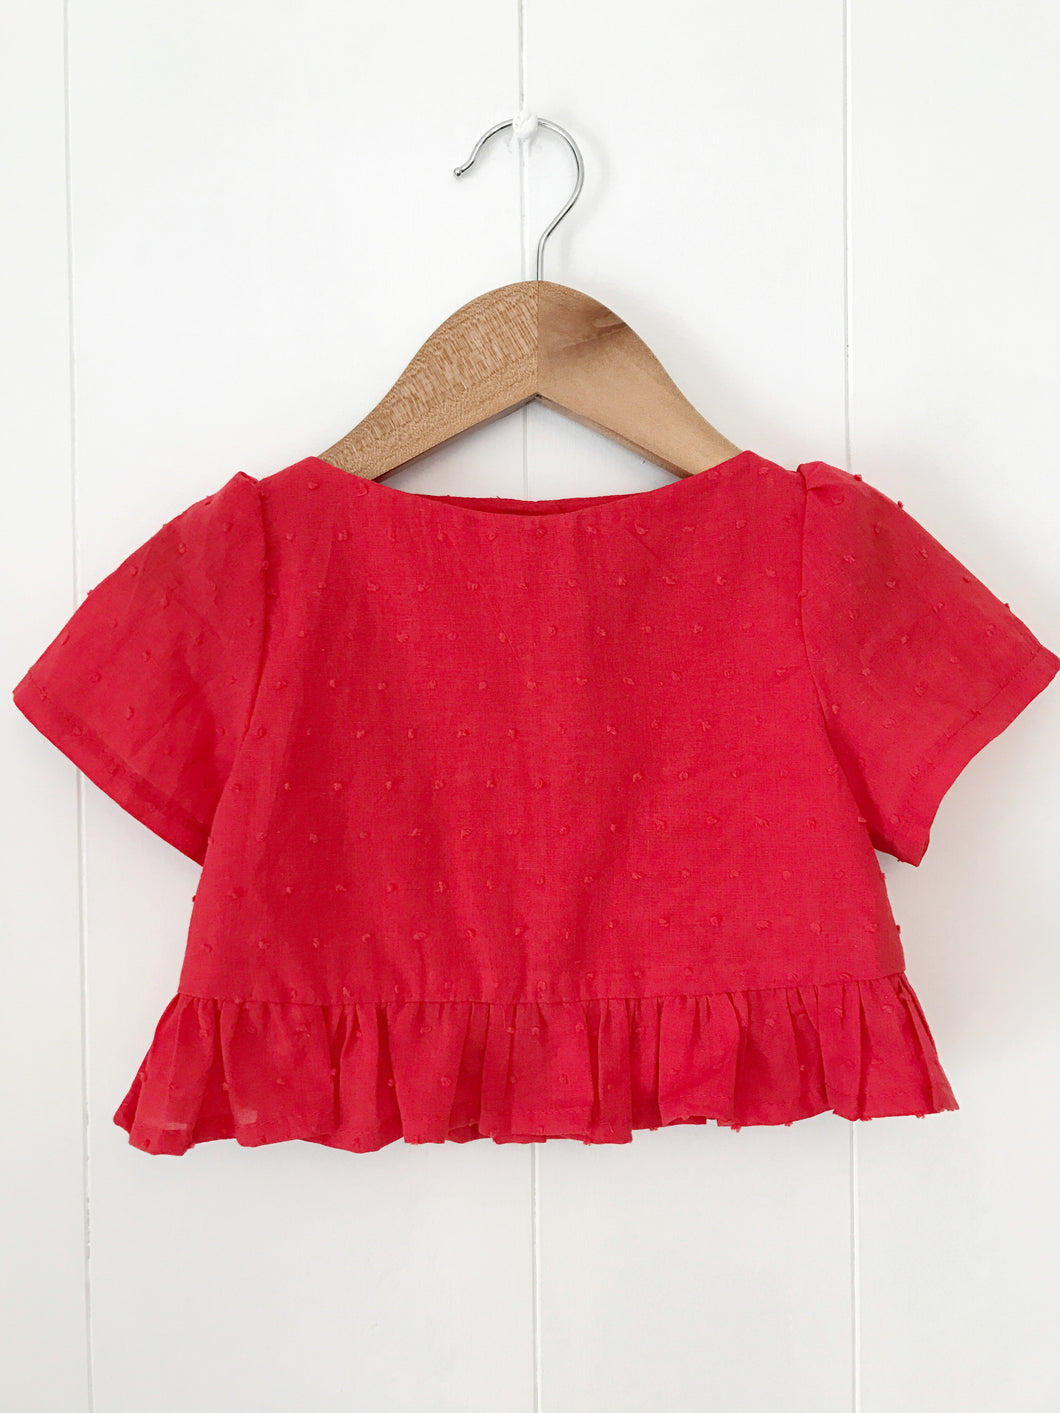 Dottie single Ruffle crop top in red - Fauves Kids